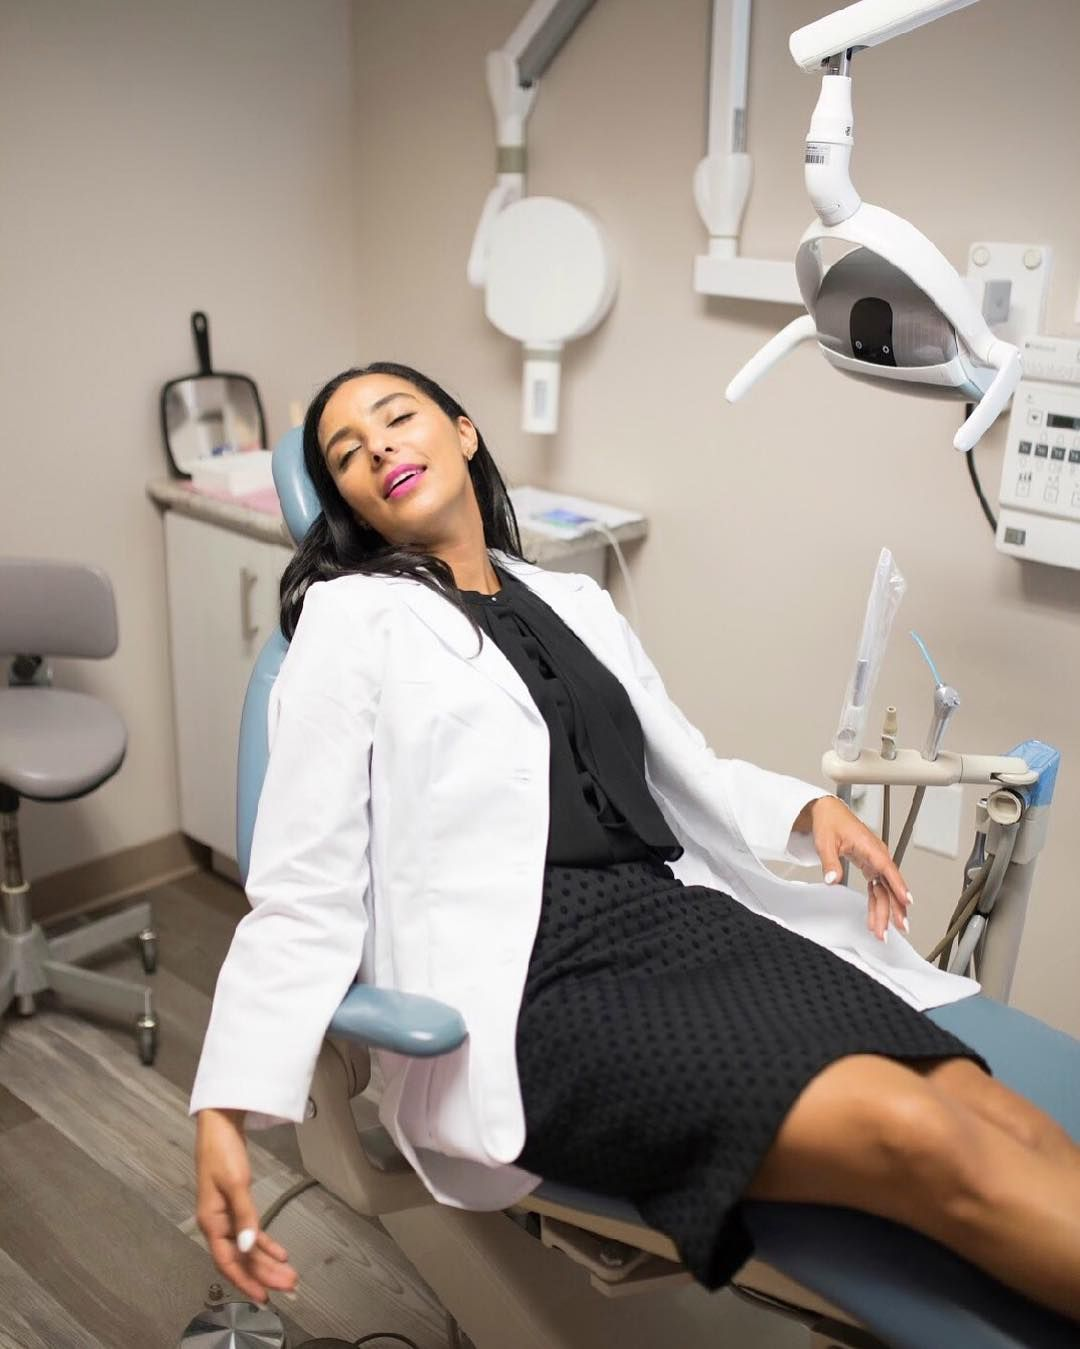 Dr Amira Ogunleye On Instagram When You Are Only Half Way Through The Work Day But You Need A Break Cosmeticd Cosmetic Dentistry Dentist Amira